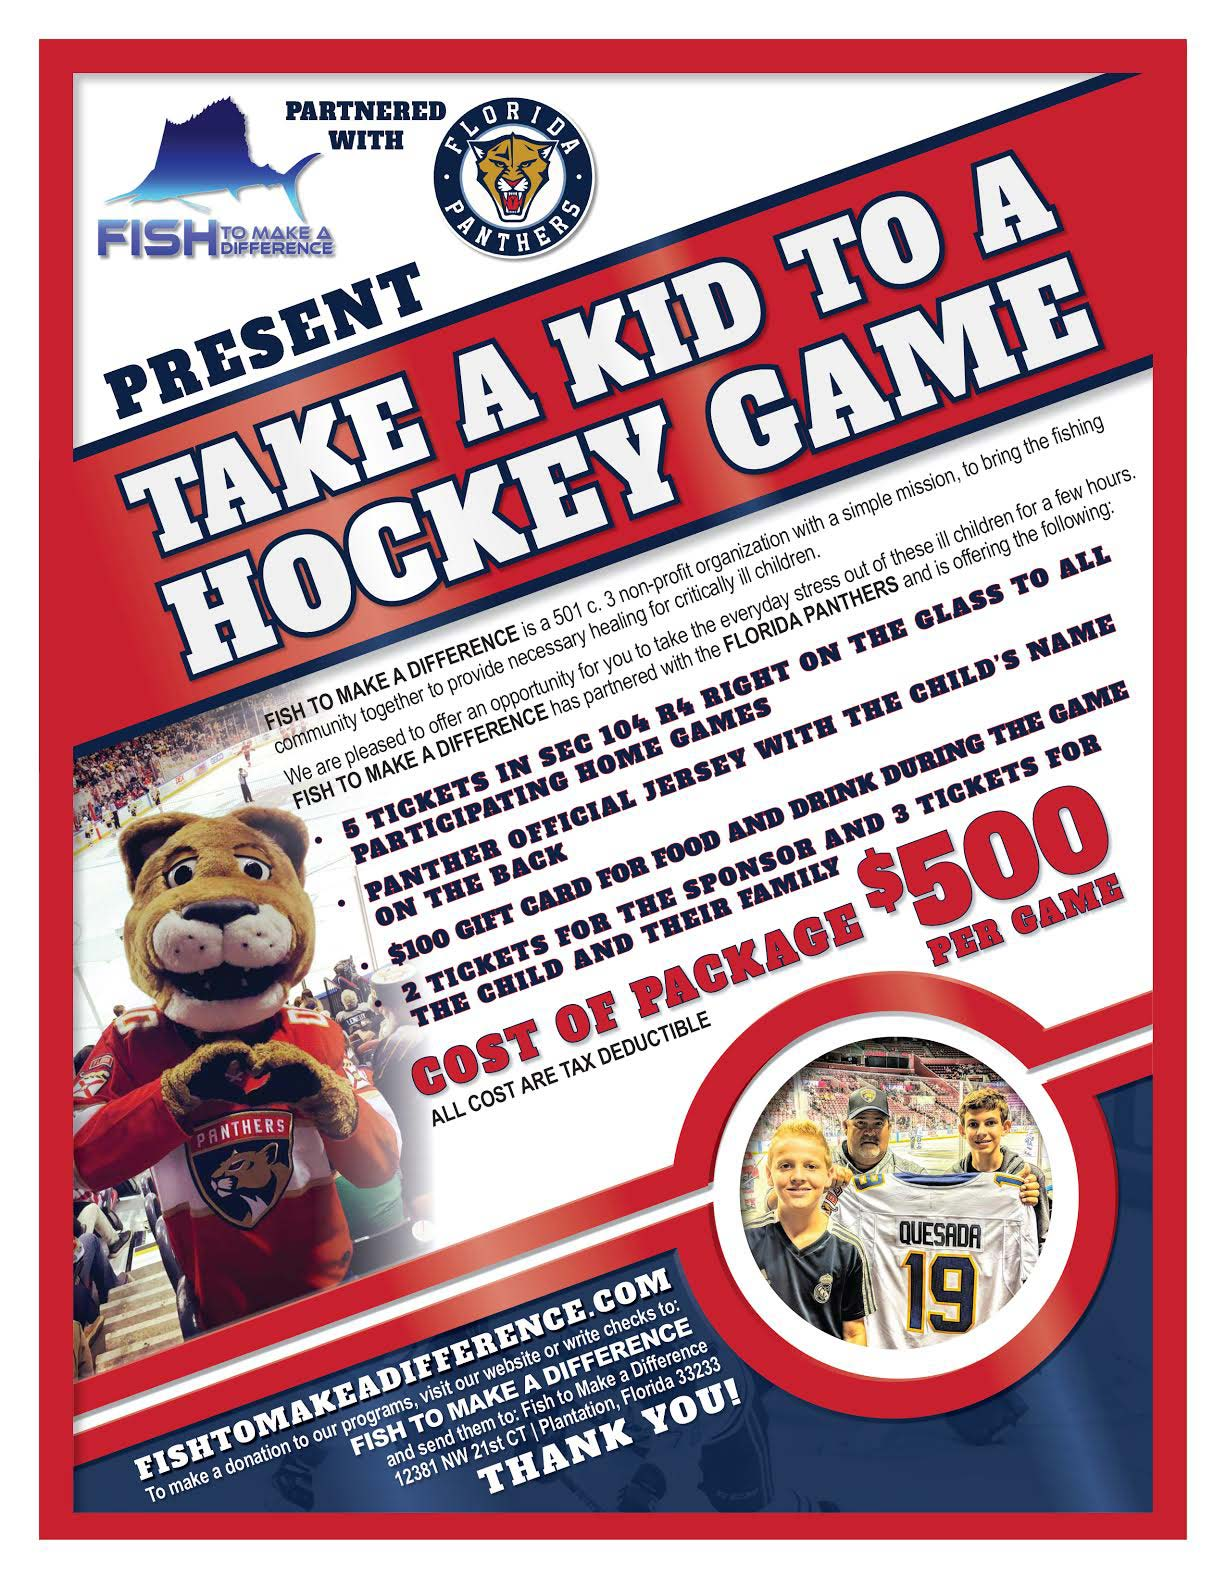 ftmad hockey event